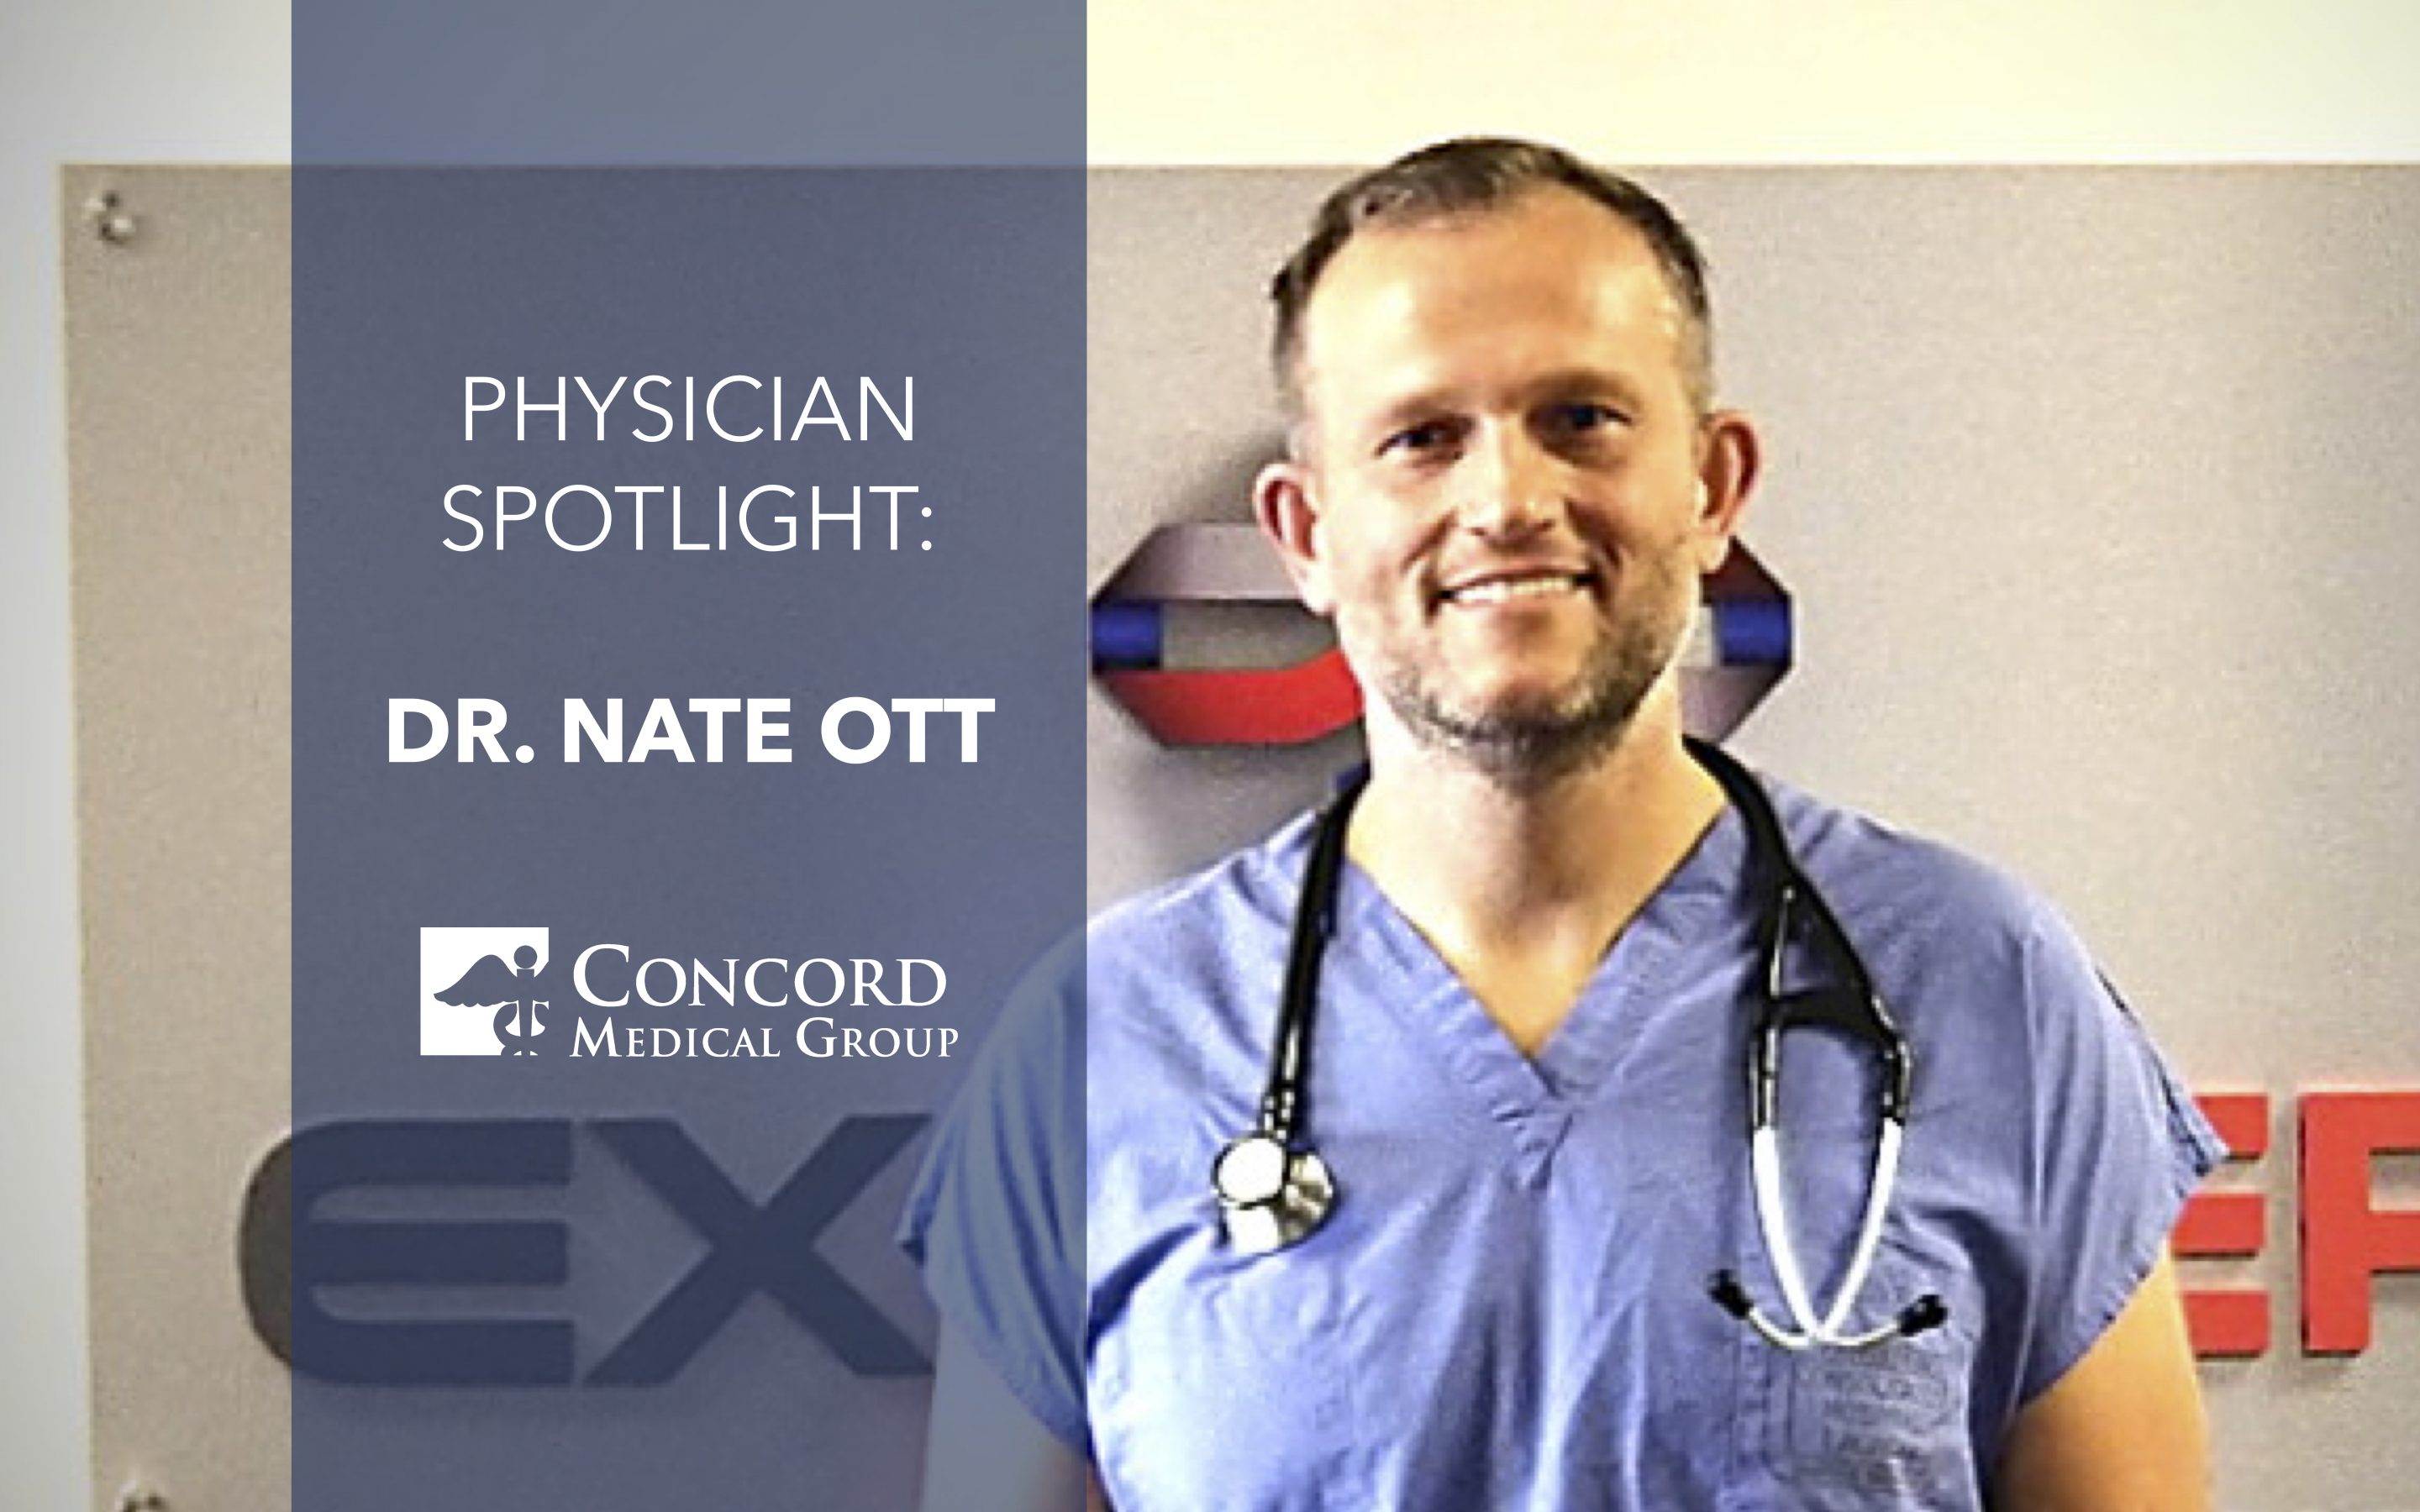 Physician Spotlight: Dr. Nate Ott